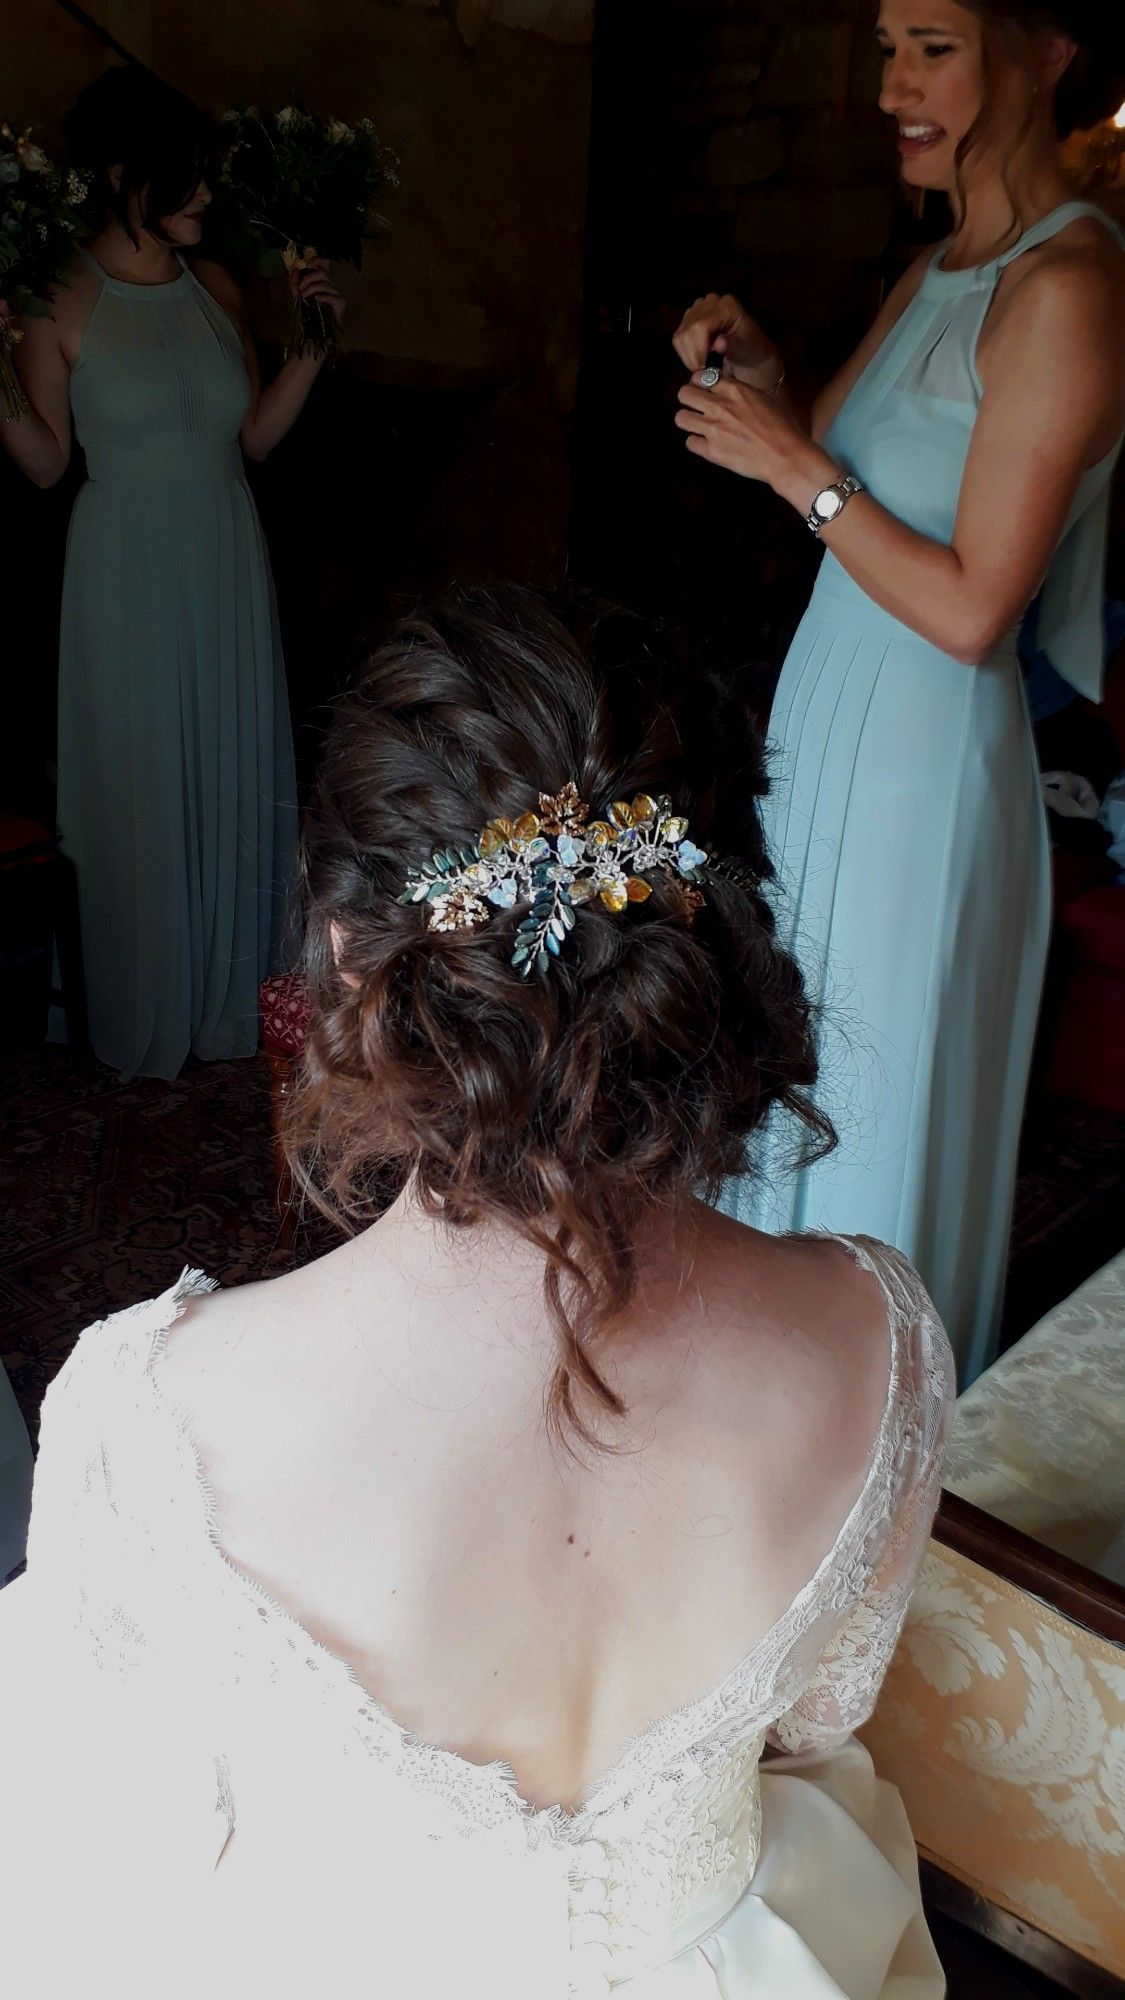 Bespoke wedding hair peices and bridal wedding hair accessories-UK